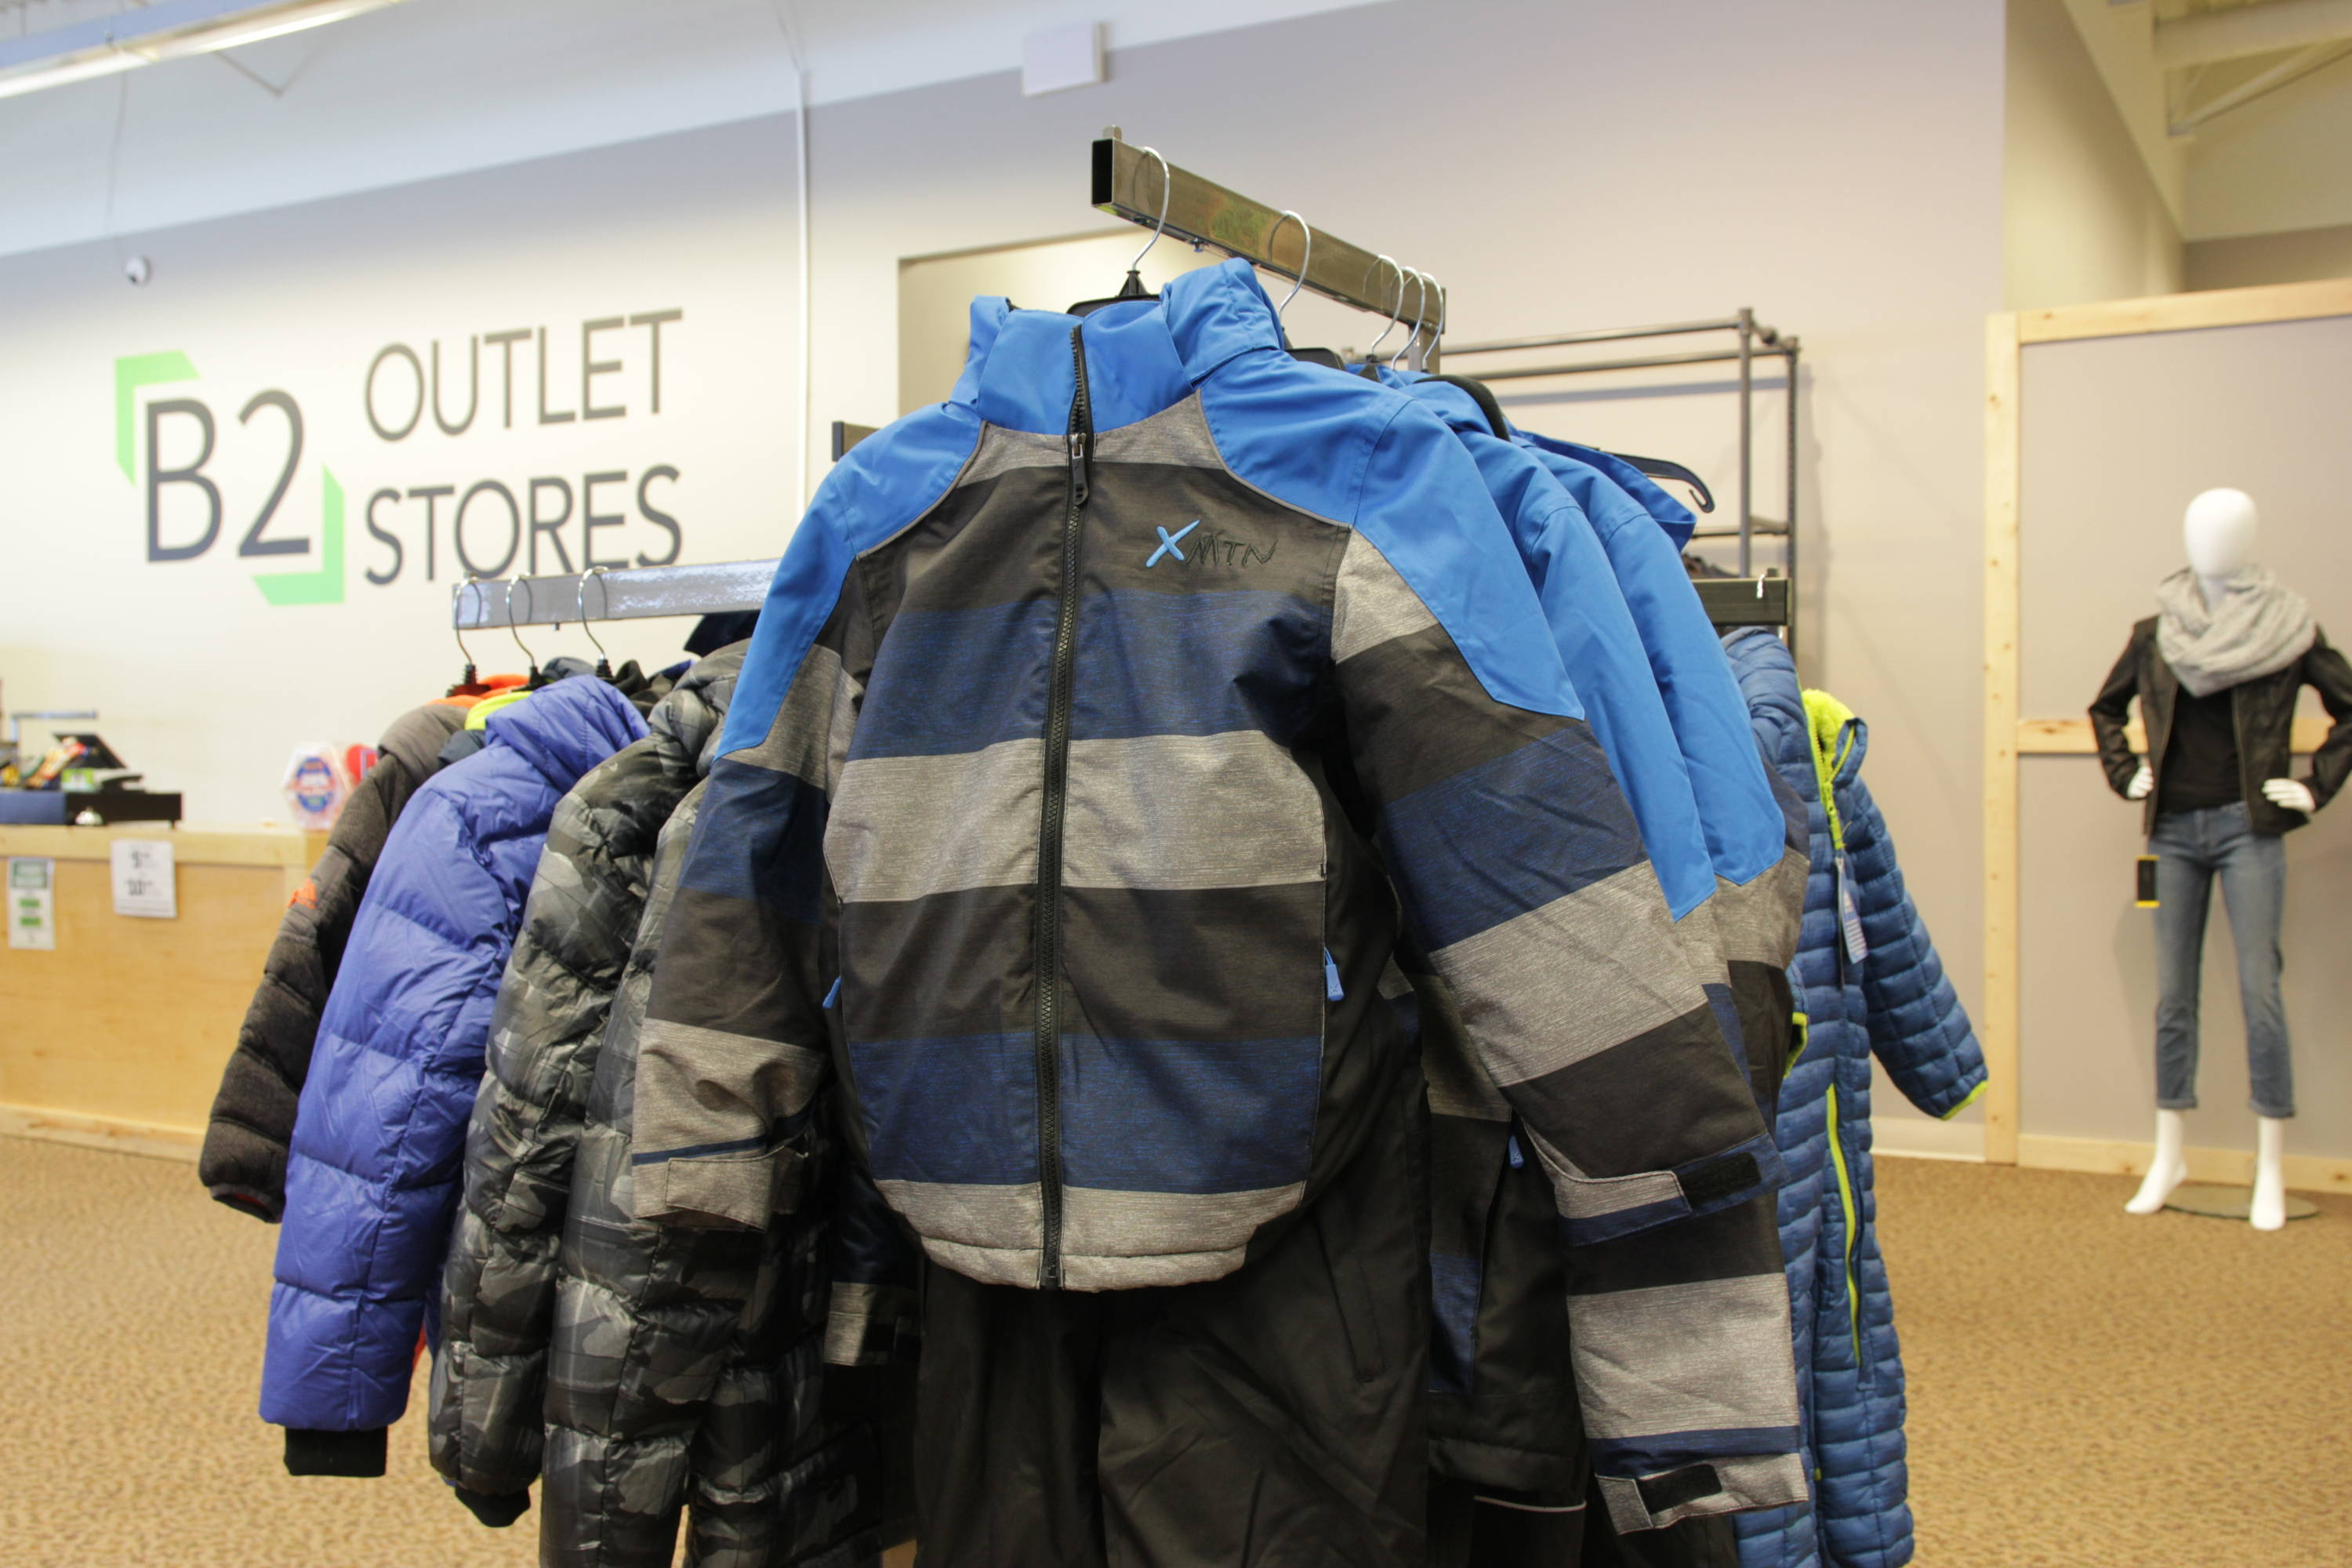 Children's Winter Clothing, Children's Clothing, Outlet Store,